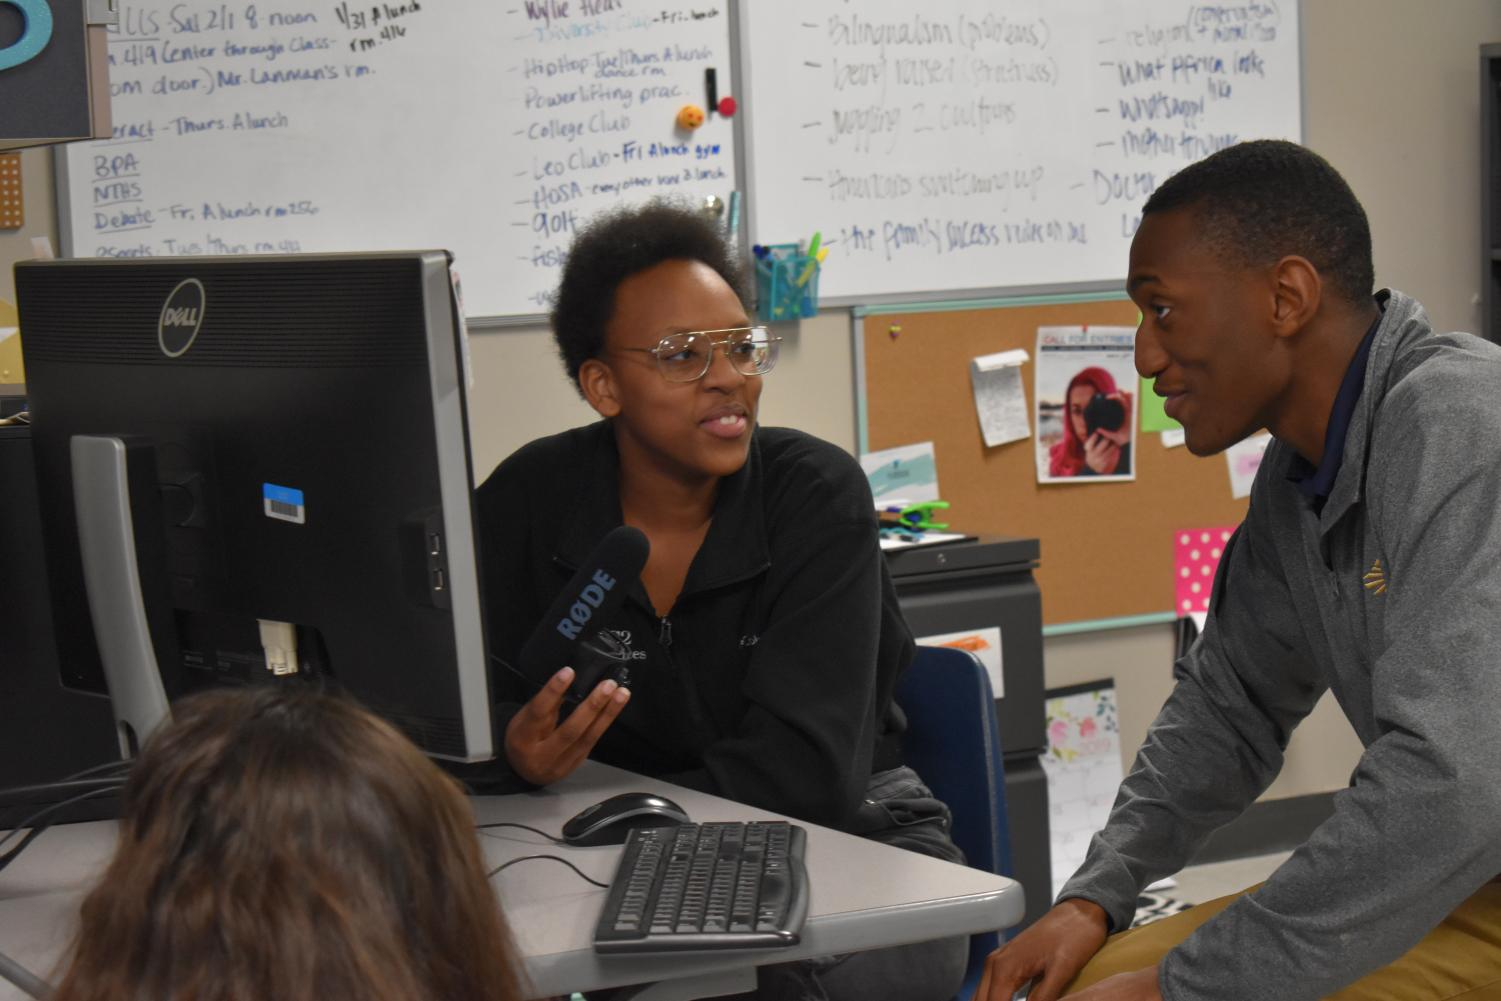 Sharing+stories+%5C%5C+Conversing+in+a+podcast+for+Black+History+Month%2C+seniors+Valerie+Msafiri+and+Enoch+Olajimi%2C+talk+about+African-American+culture+in+their+sixth+period+Newspaper+class.+%0Aphoto+by+Katie+Borchetta